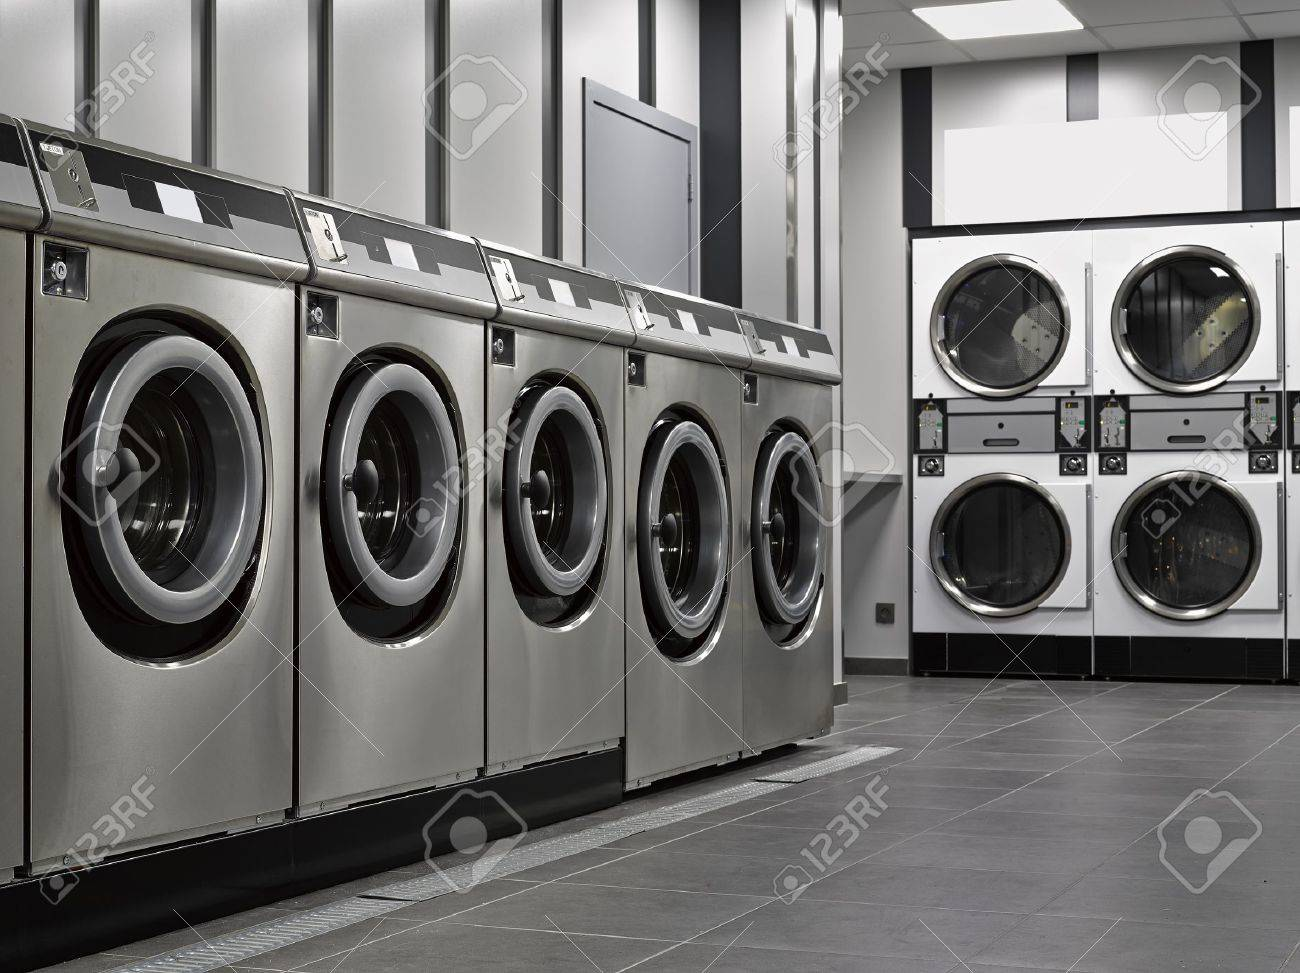 A row of industrial washing machines in a public laundromat Standard-Bild - 16813444